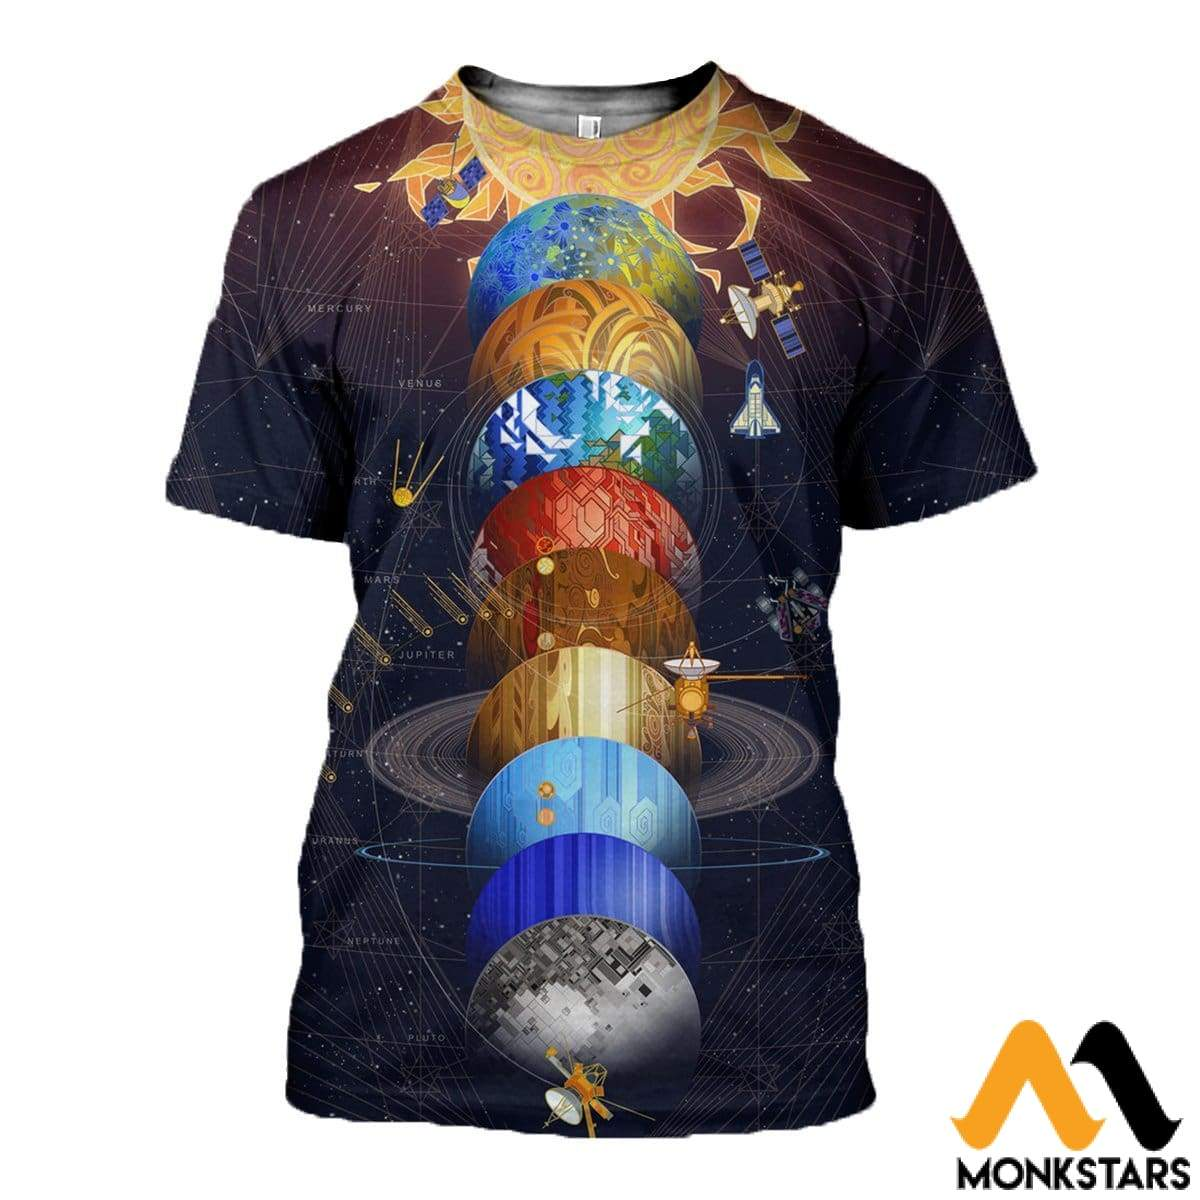 3D All Over Printed Solar System Shirts And Shorts T-Shirt / Xs Clothes